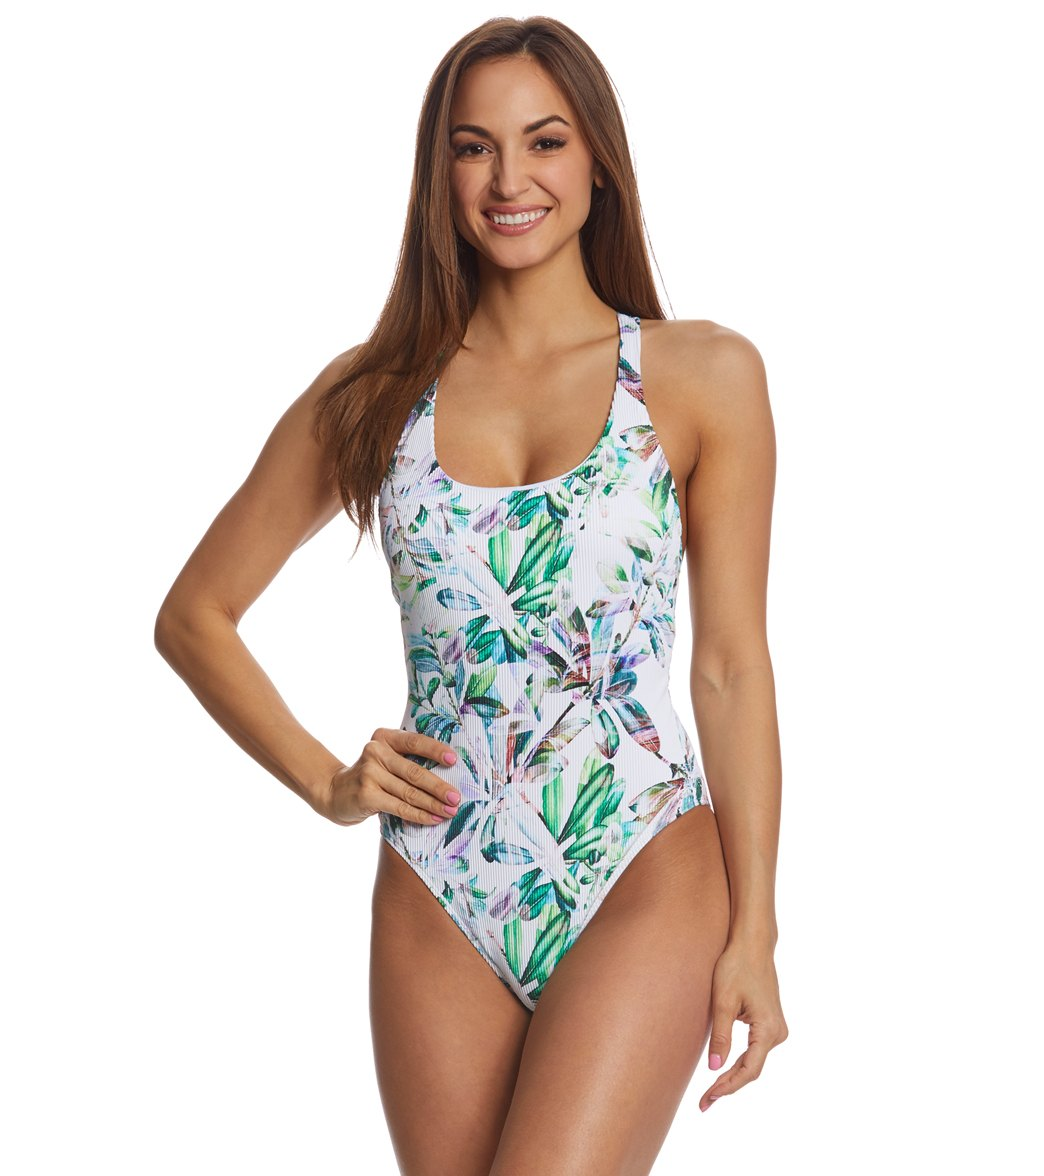 fa9e6eabff49bd Next Minimalist Capri One Piece Swimsuit at SwimOutlet.com - Free Shipping